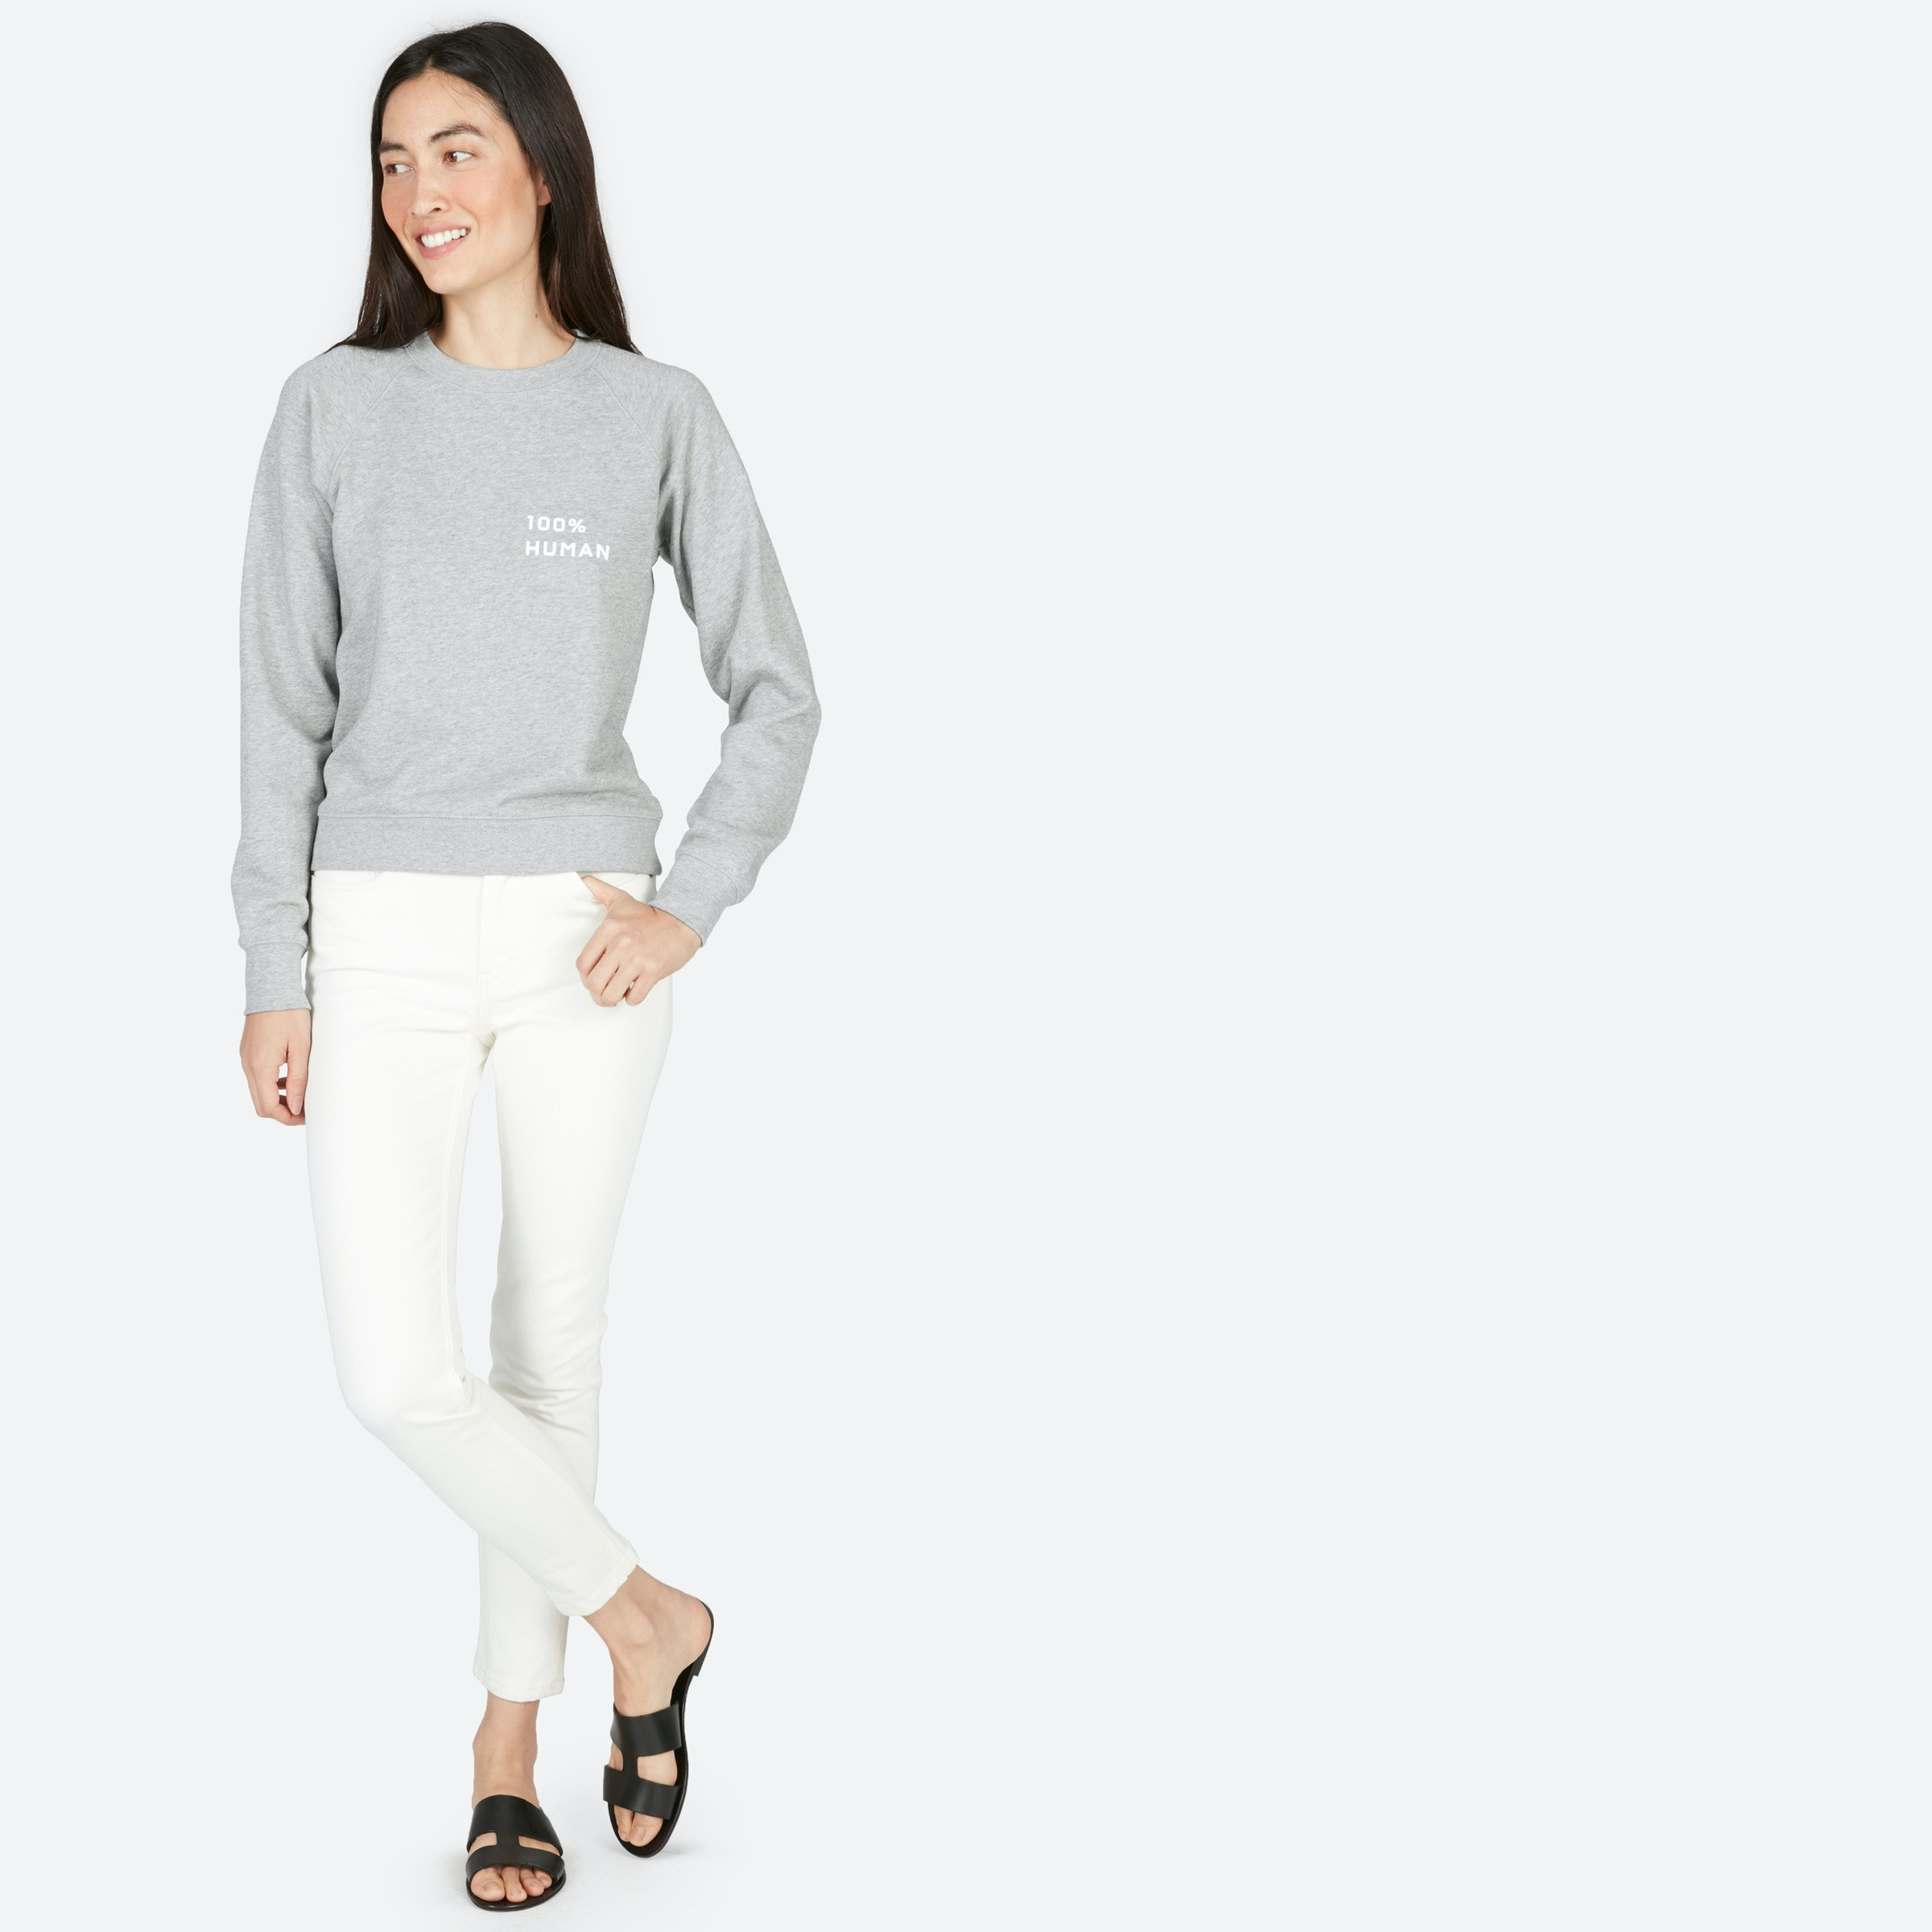 The 100% Human French Terry Sweatshirt In Small Print by Everlane